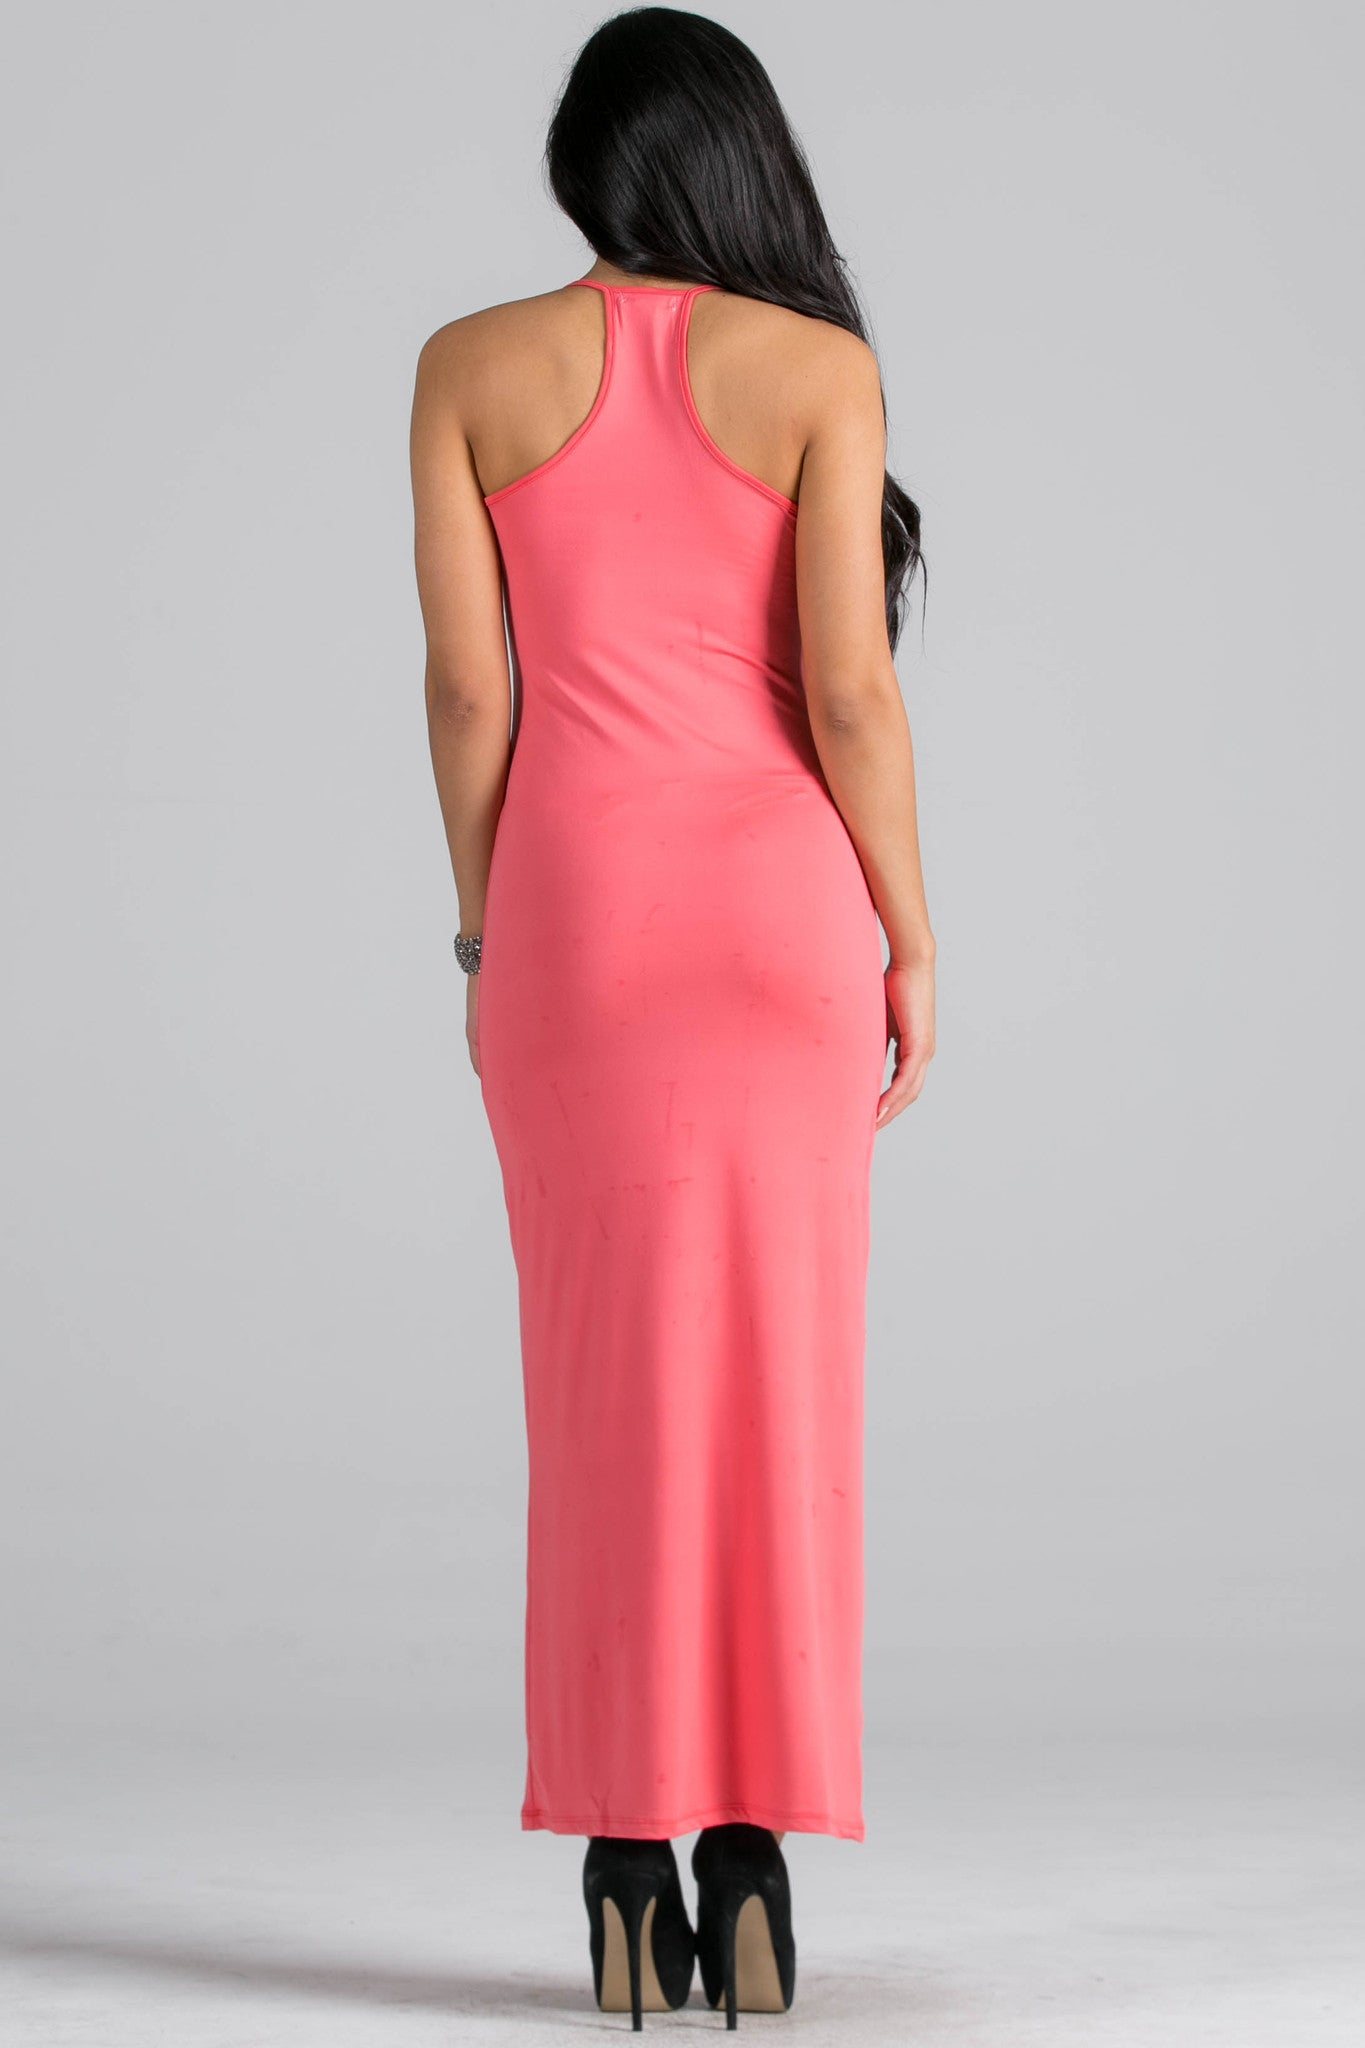 Micro Suede Coral Maxi Dress - Dresses - My Yuccie - 3